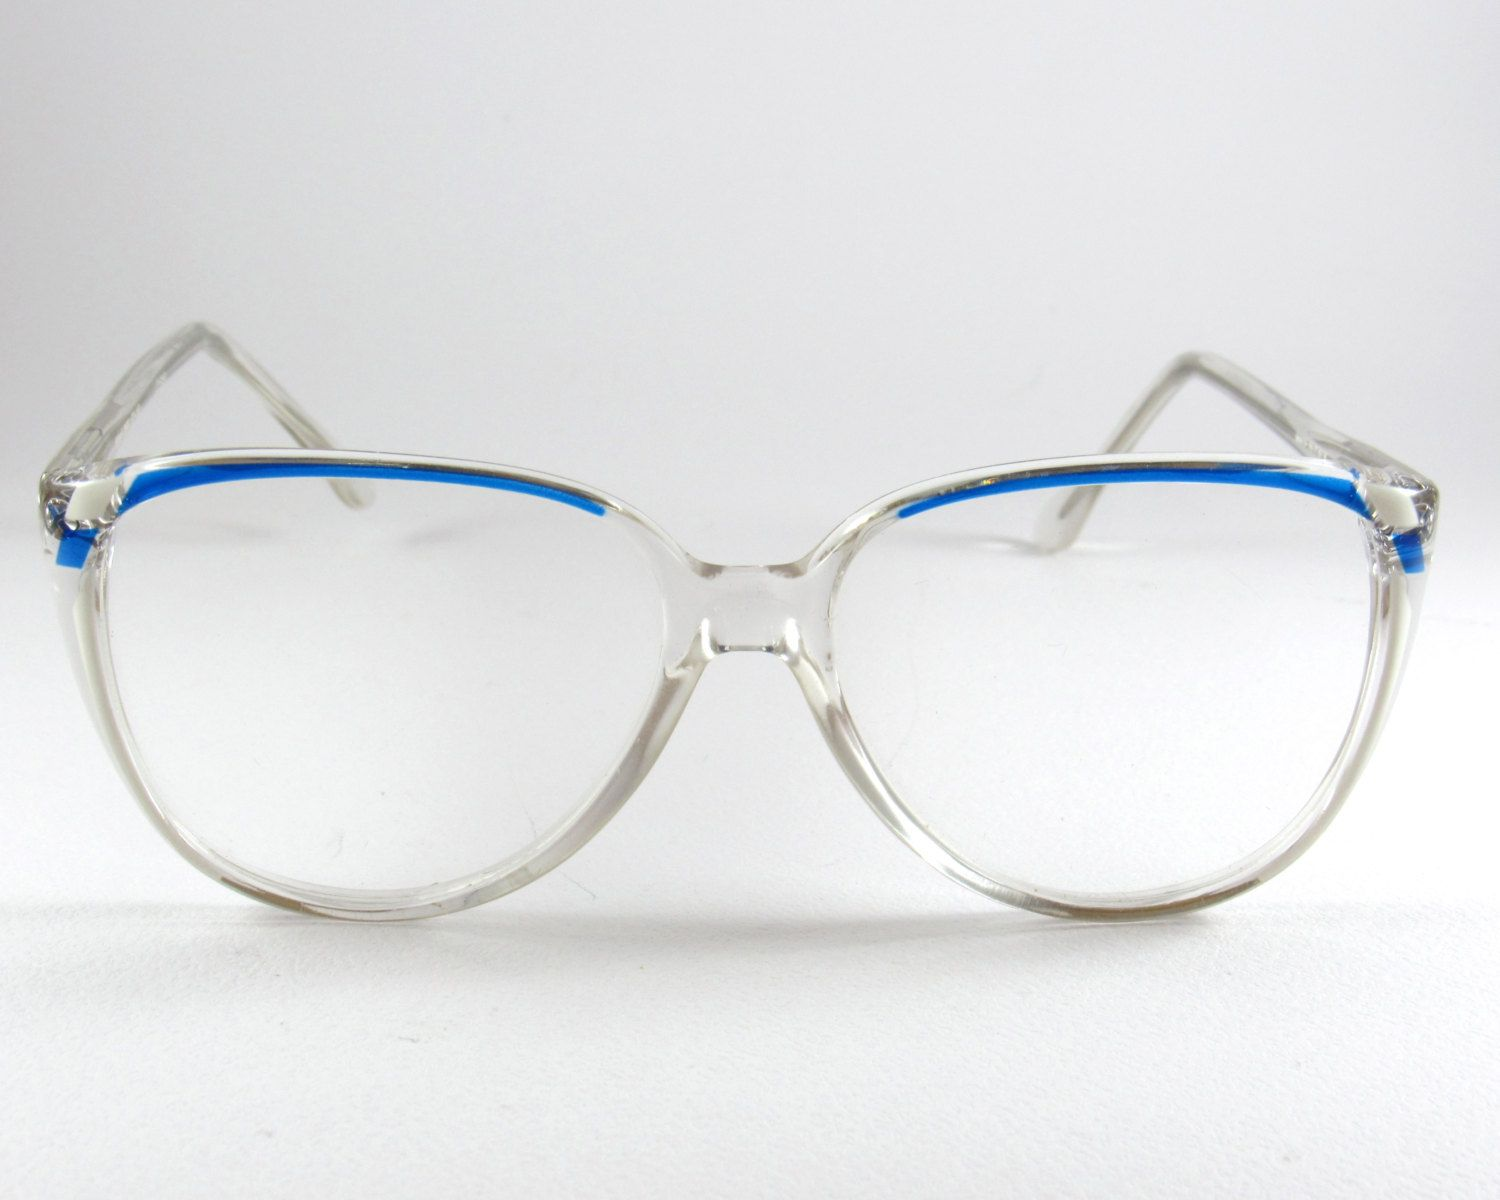 cbc97d49c530 ... 70s Clear Transparent Blue Oversize Frames made in Italy